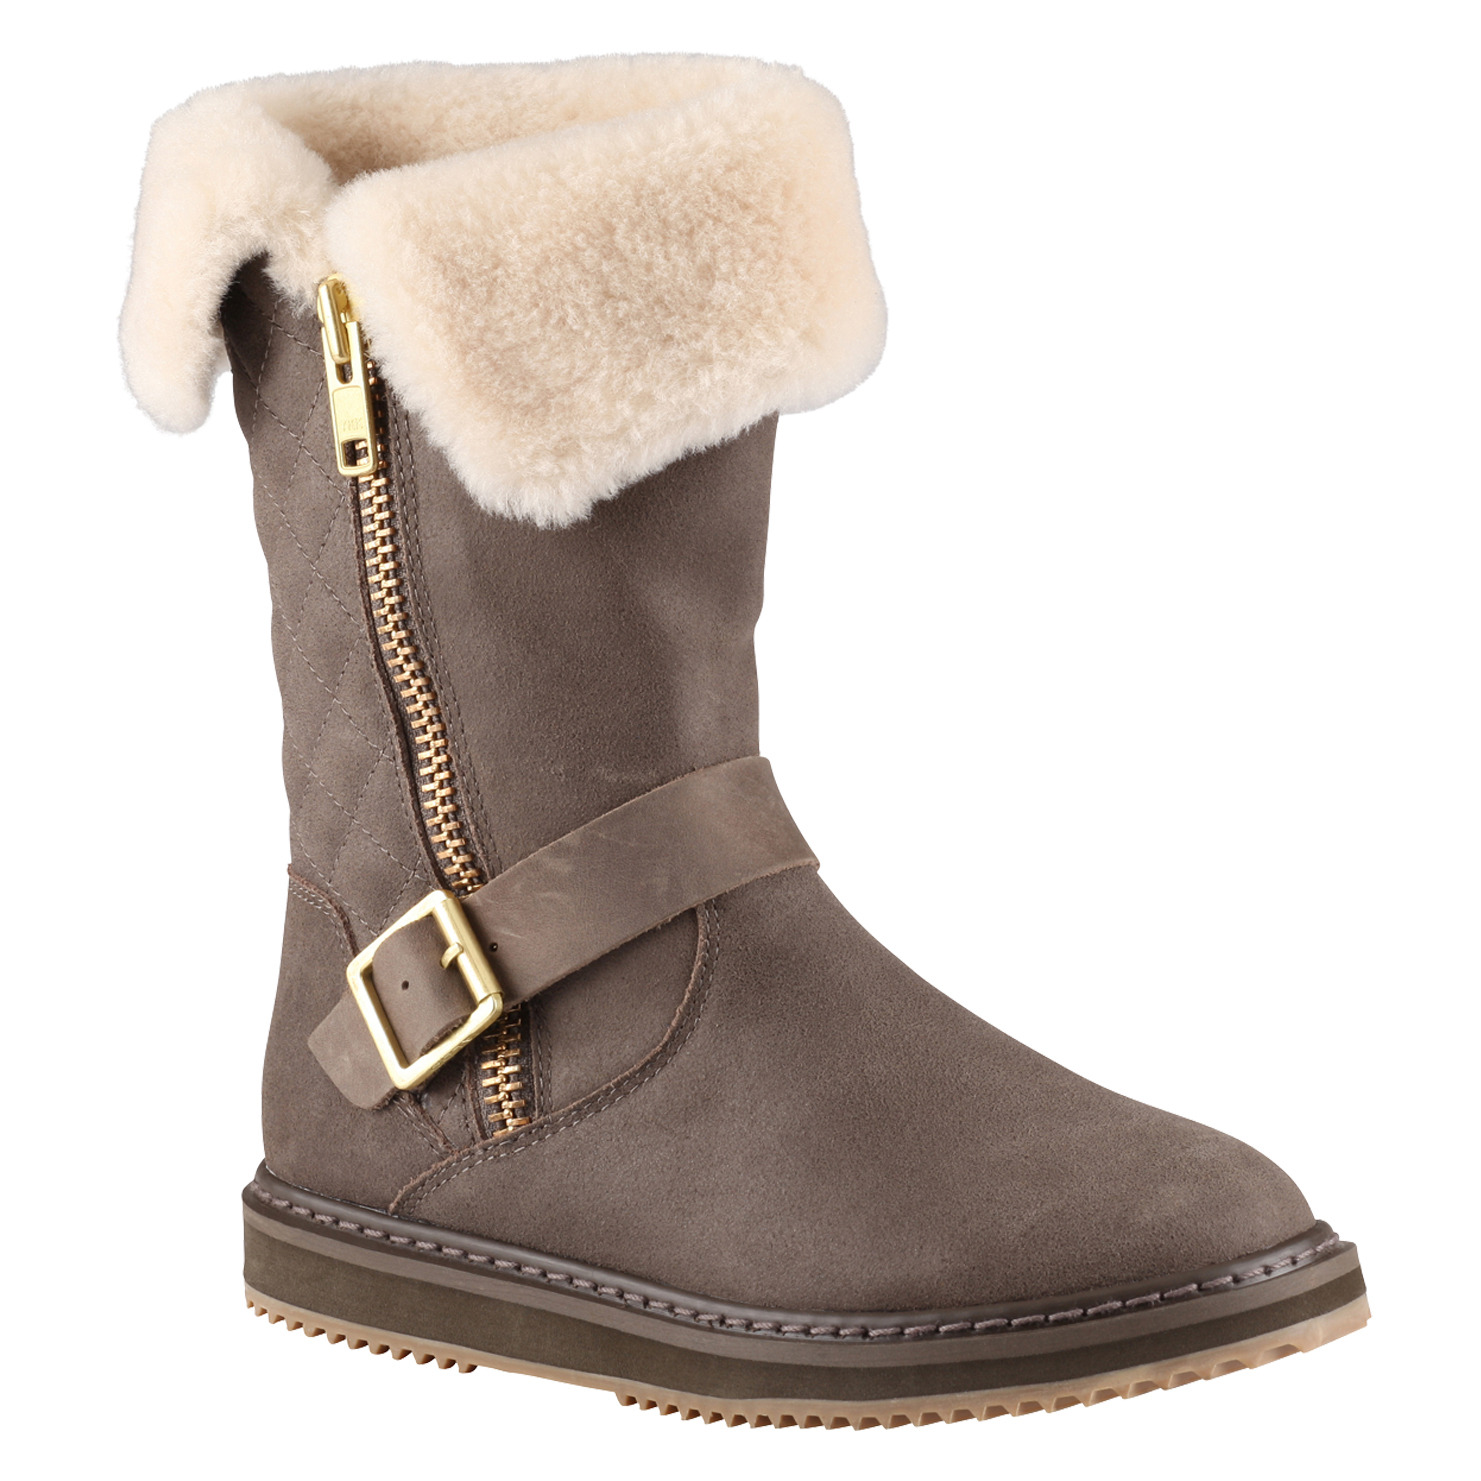 Pretty Best Snow Boots For Women : Stunning Best Cold Weather ...